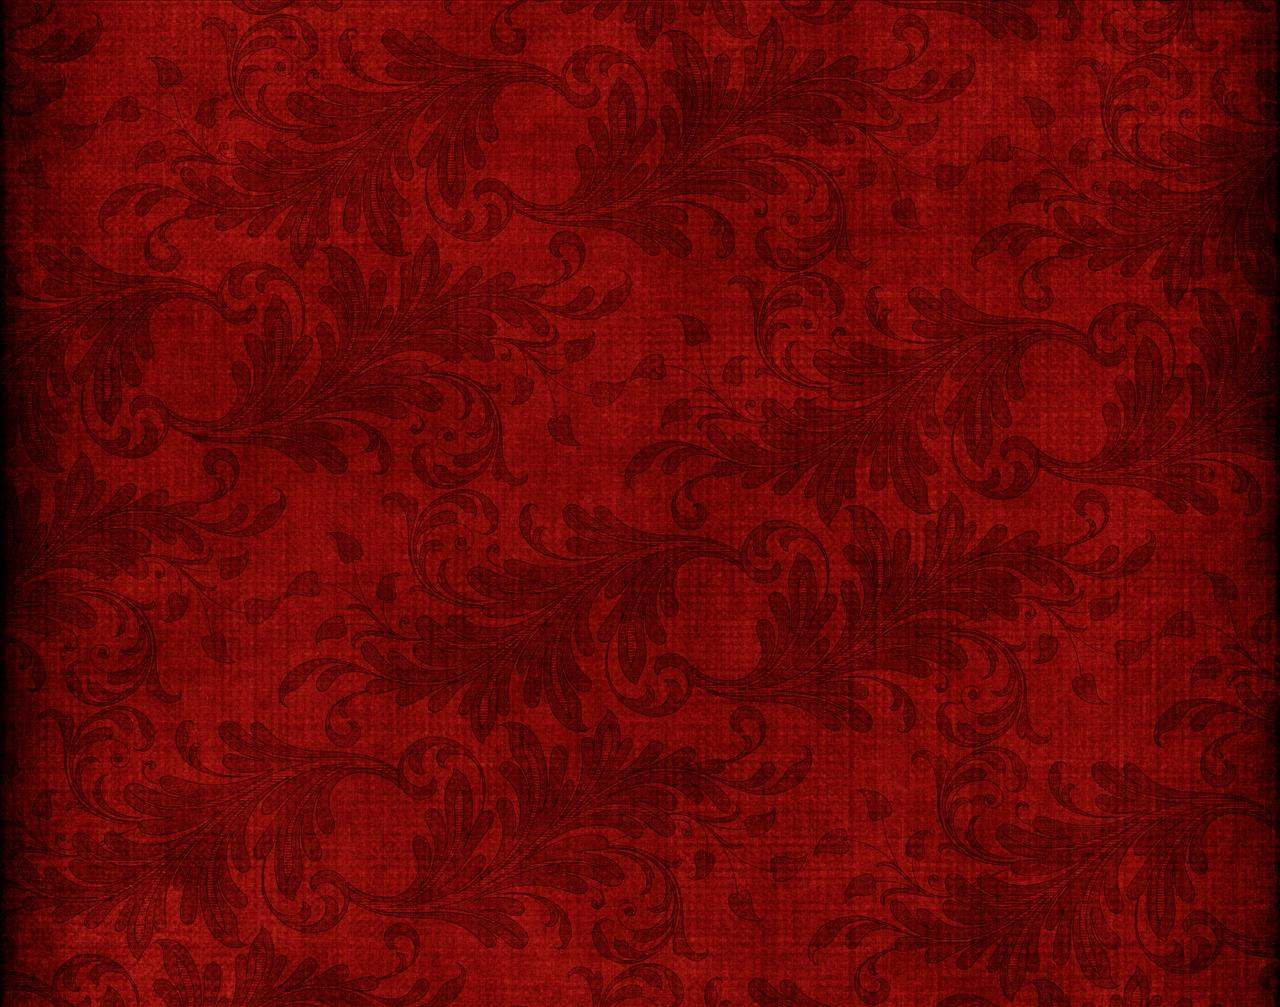 download red patterns wallpaper - photo #21